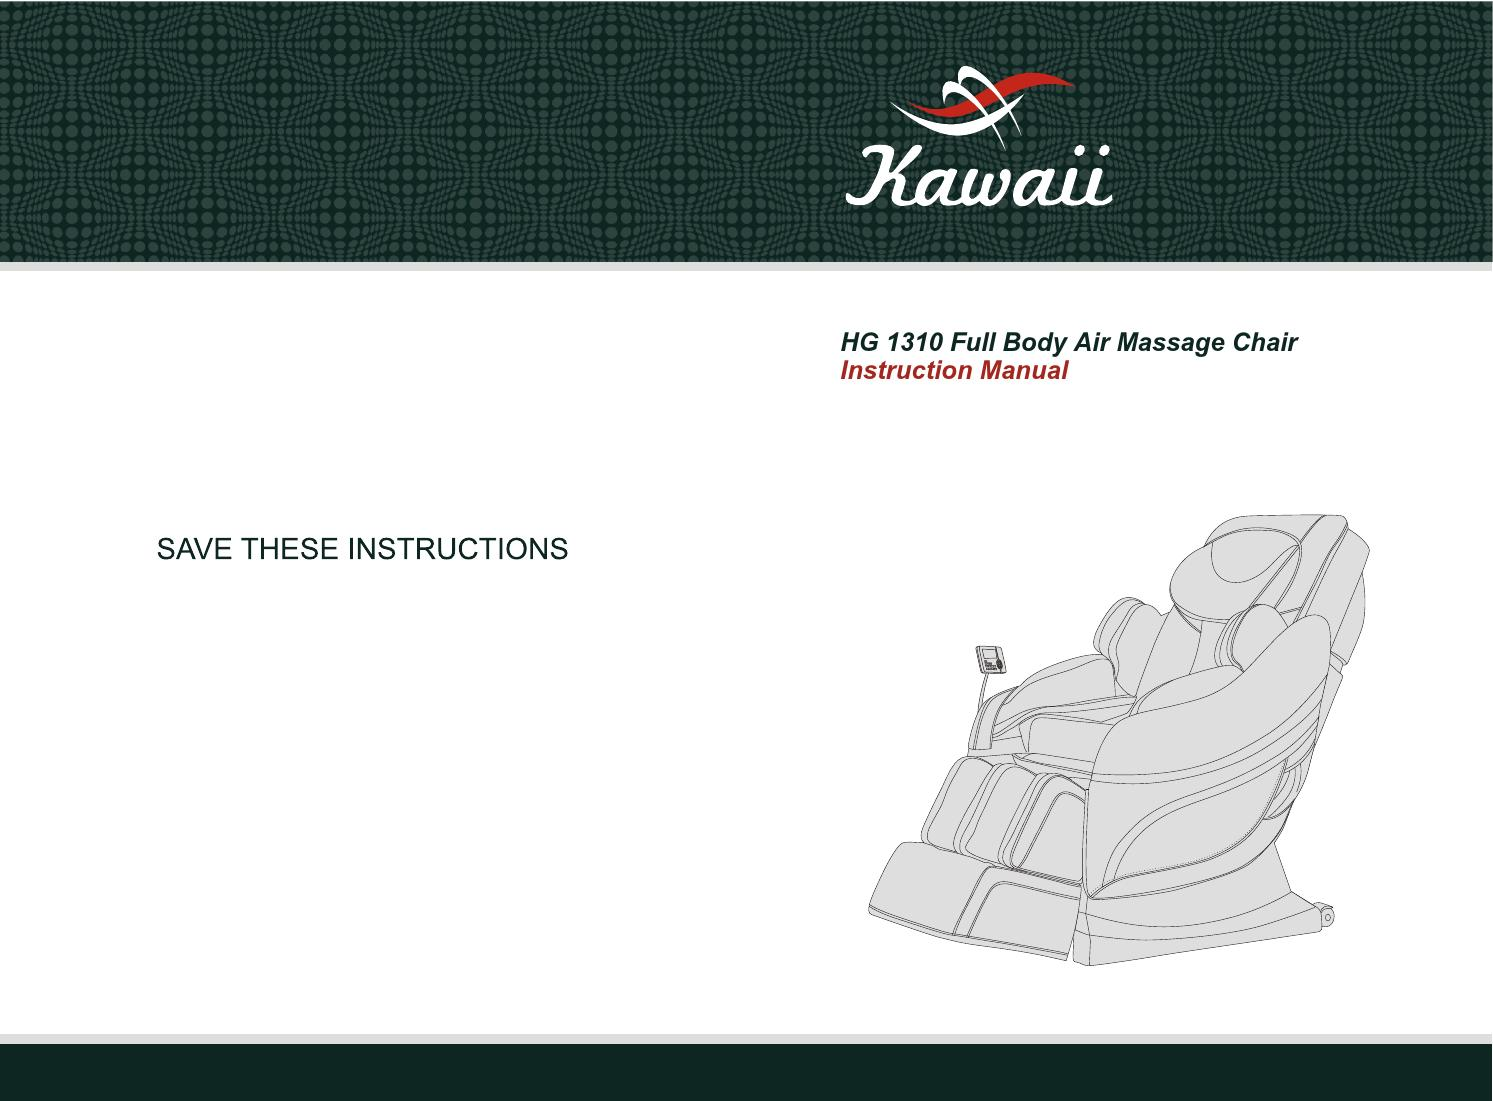 kawaii massage chair skyline furniture armless accent hg1310 instruction manual english by issuu